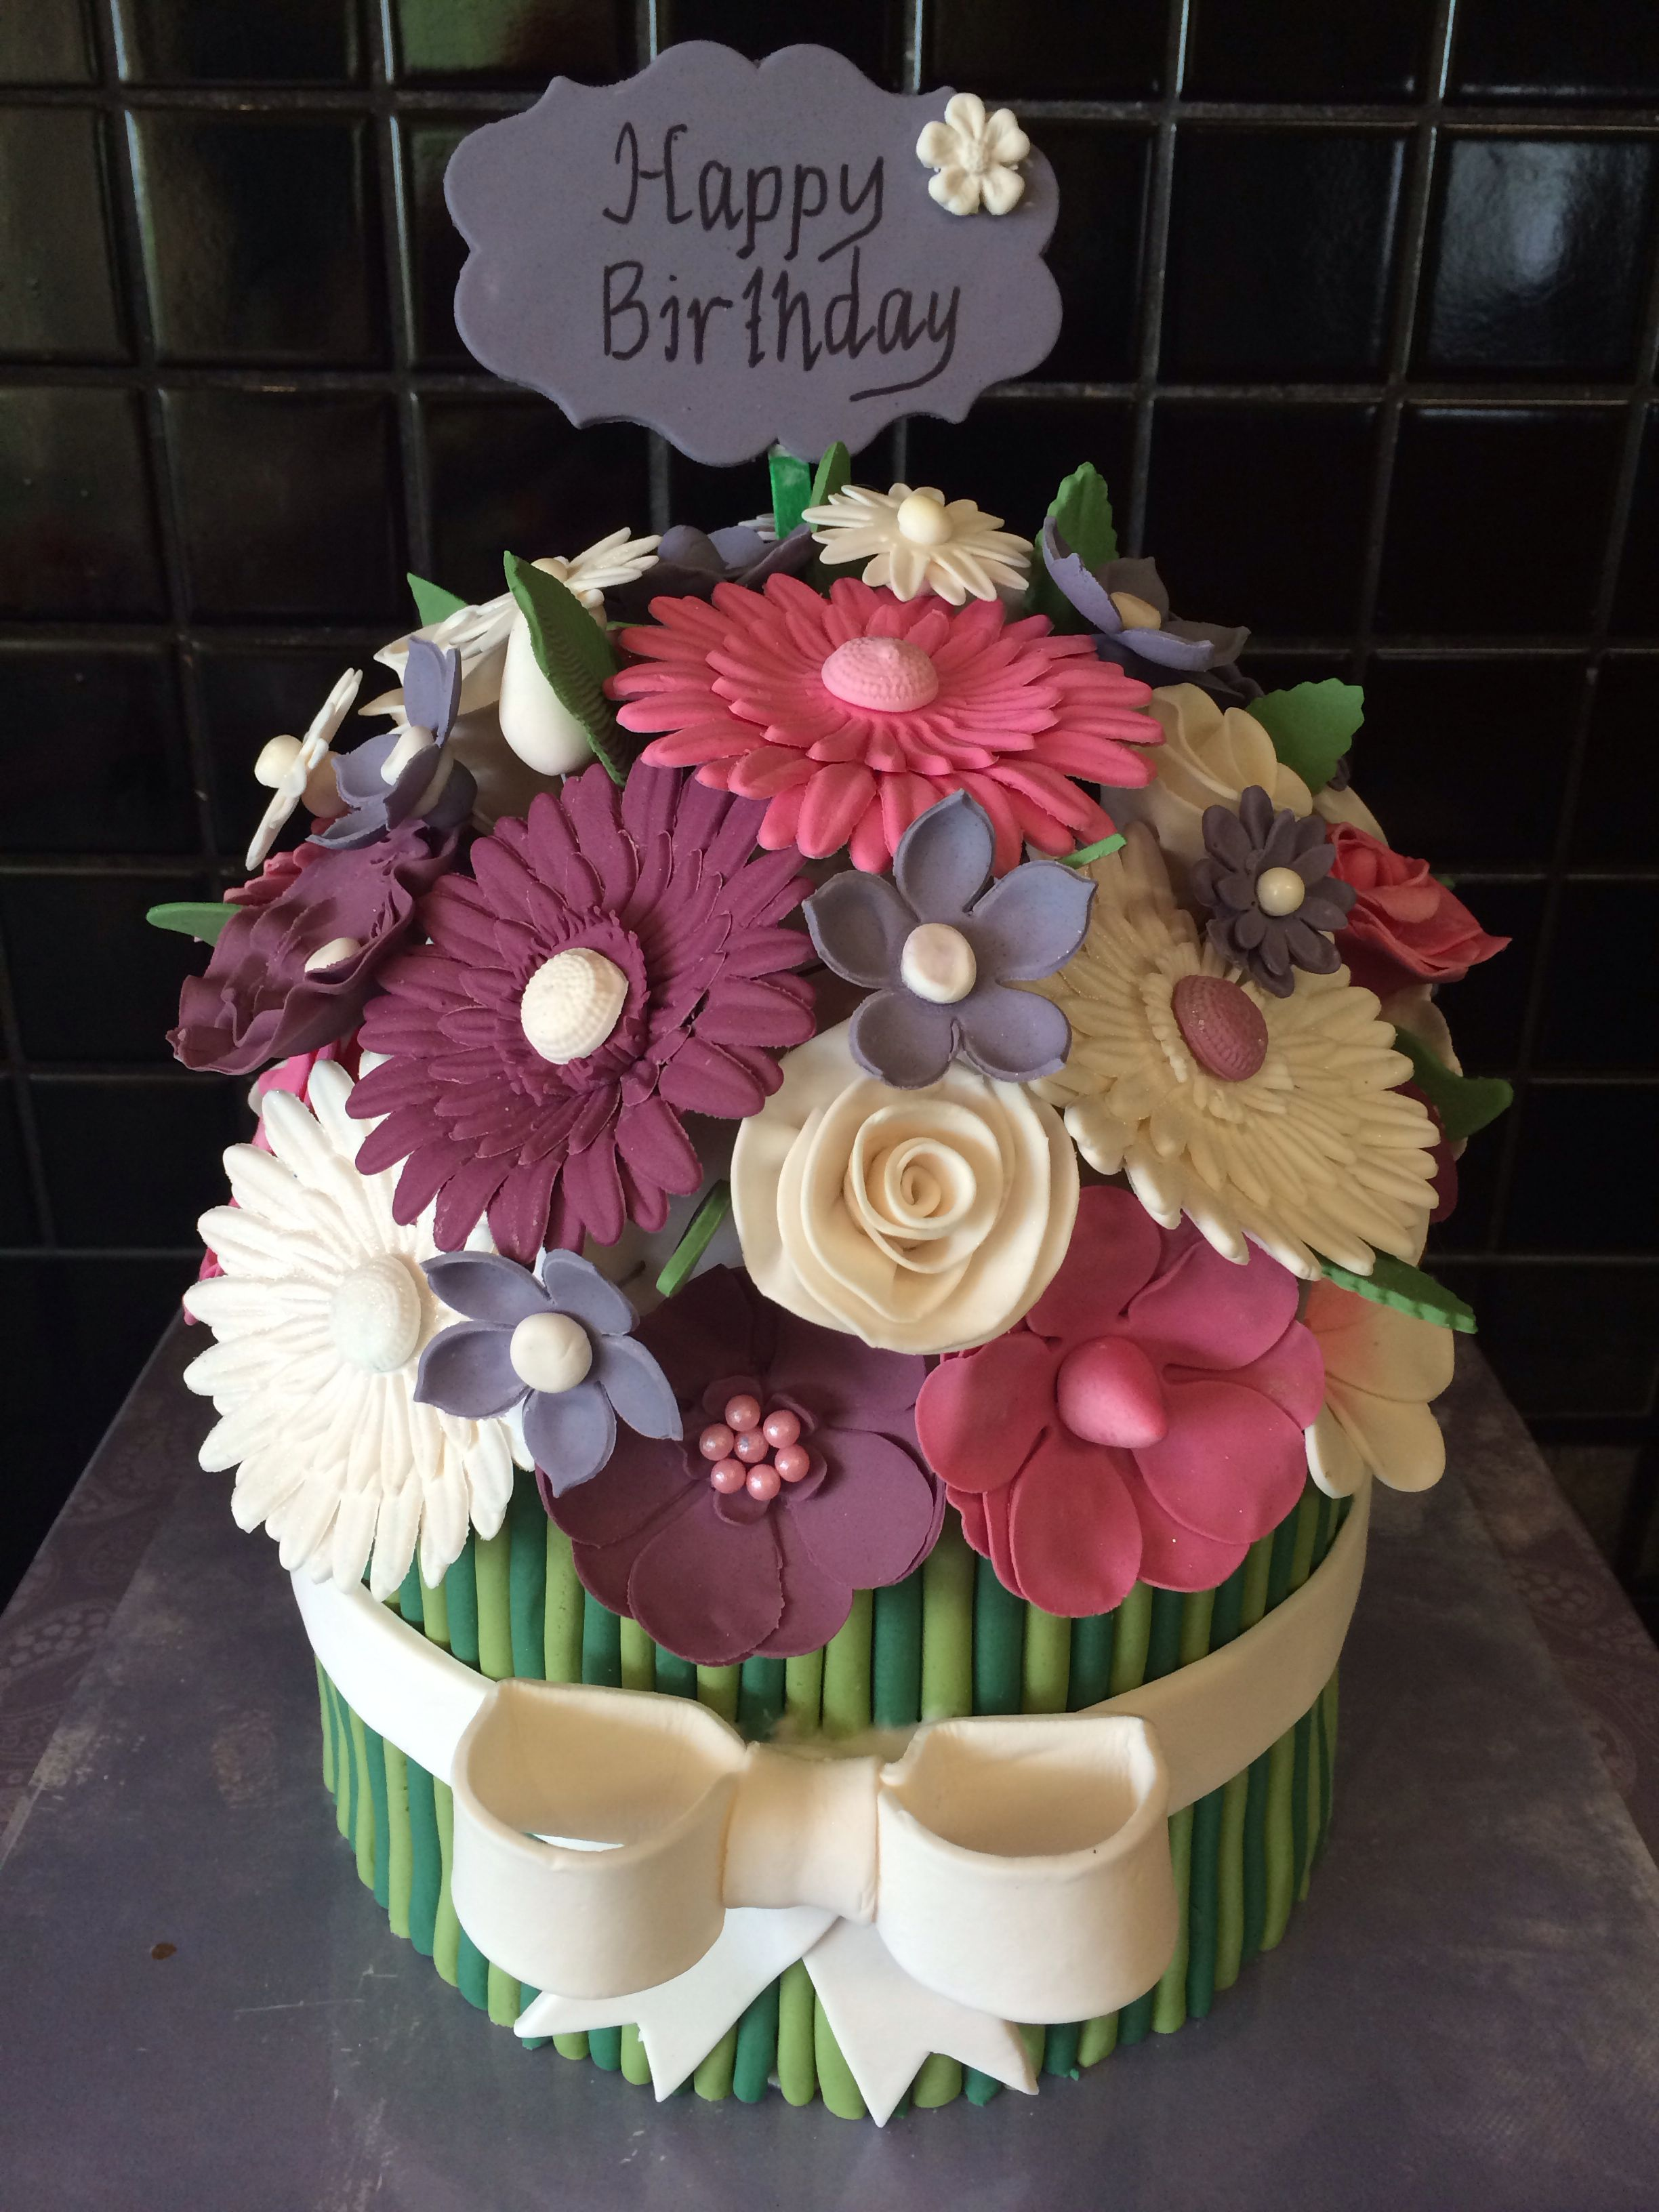 Flower bouquet cake cake ideas pinterest cake flowers and fondant